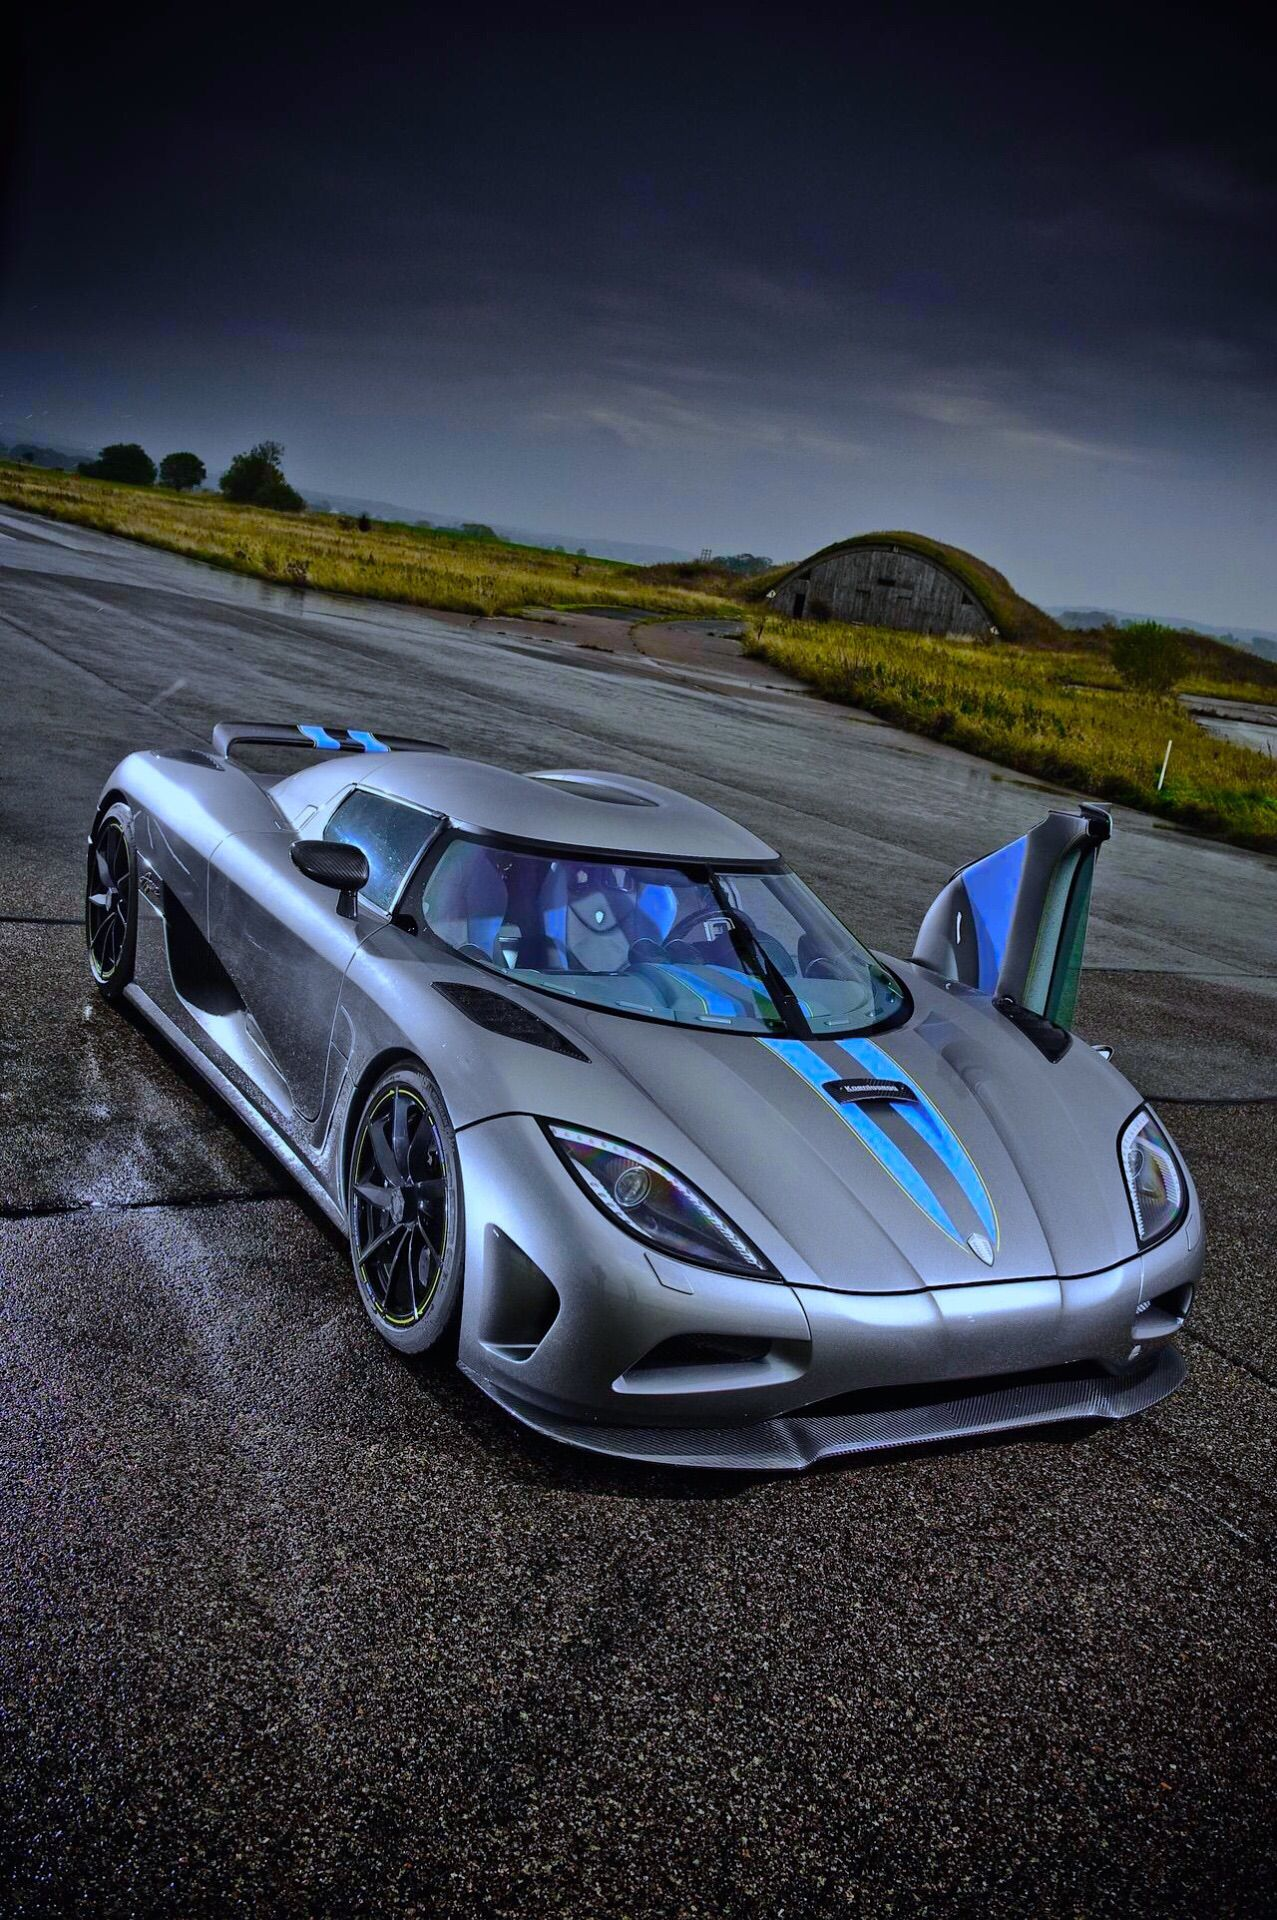 Koenigsegg Agera R Fast And Furious Cars Super Cars Lamborghini